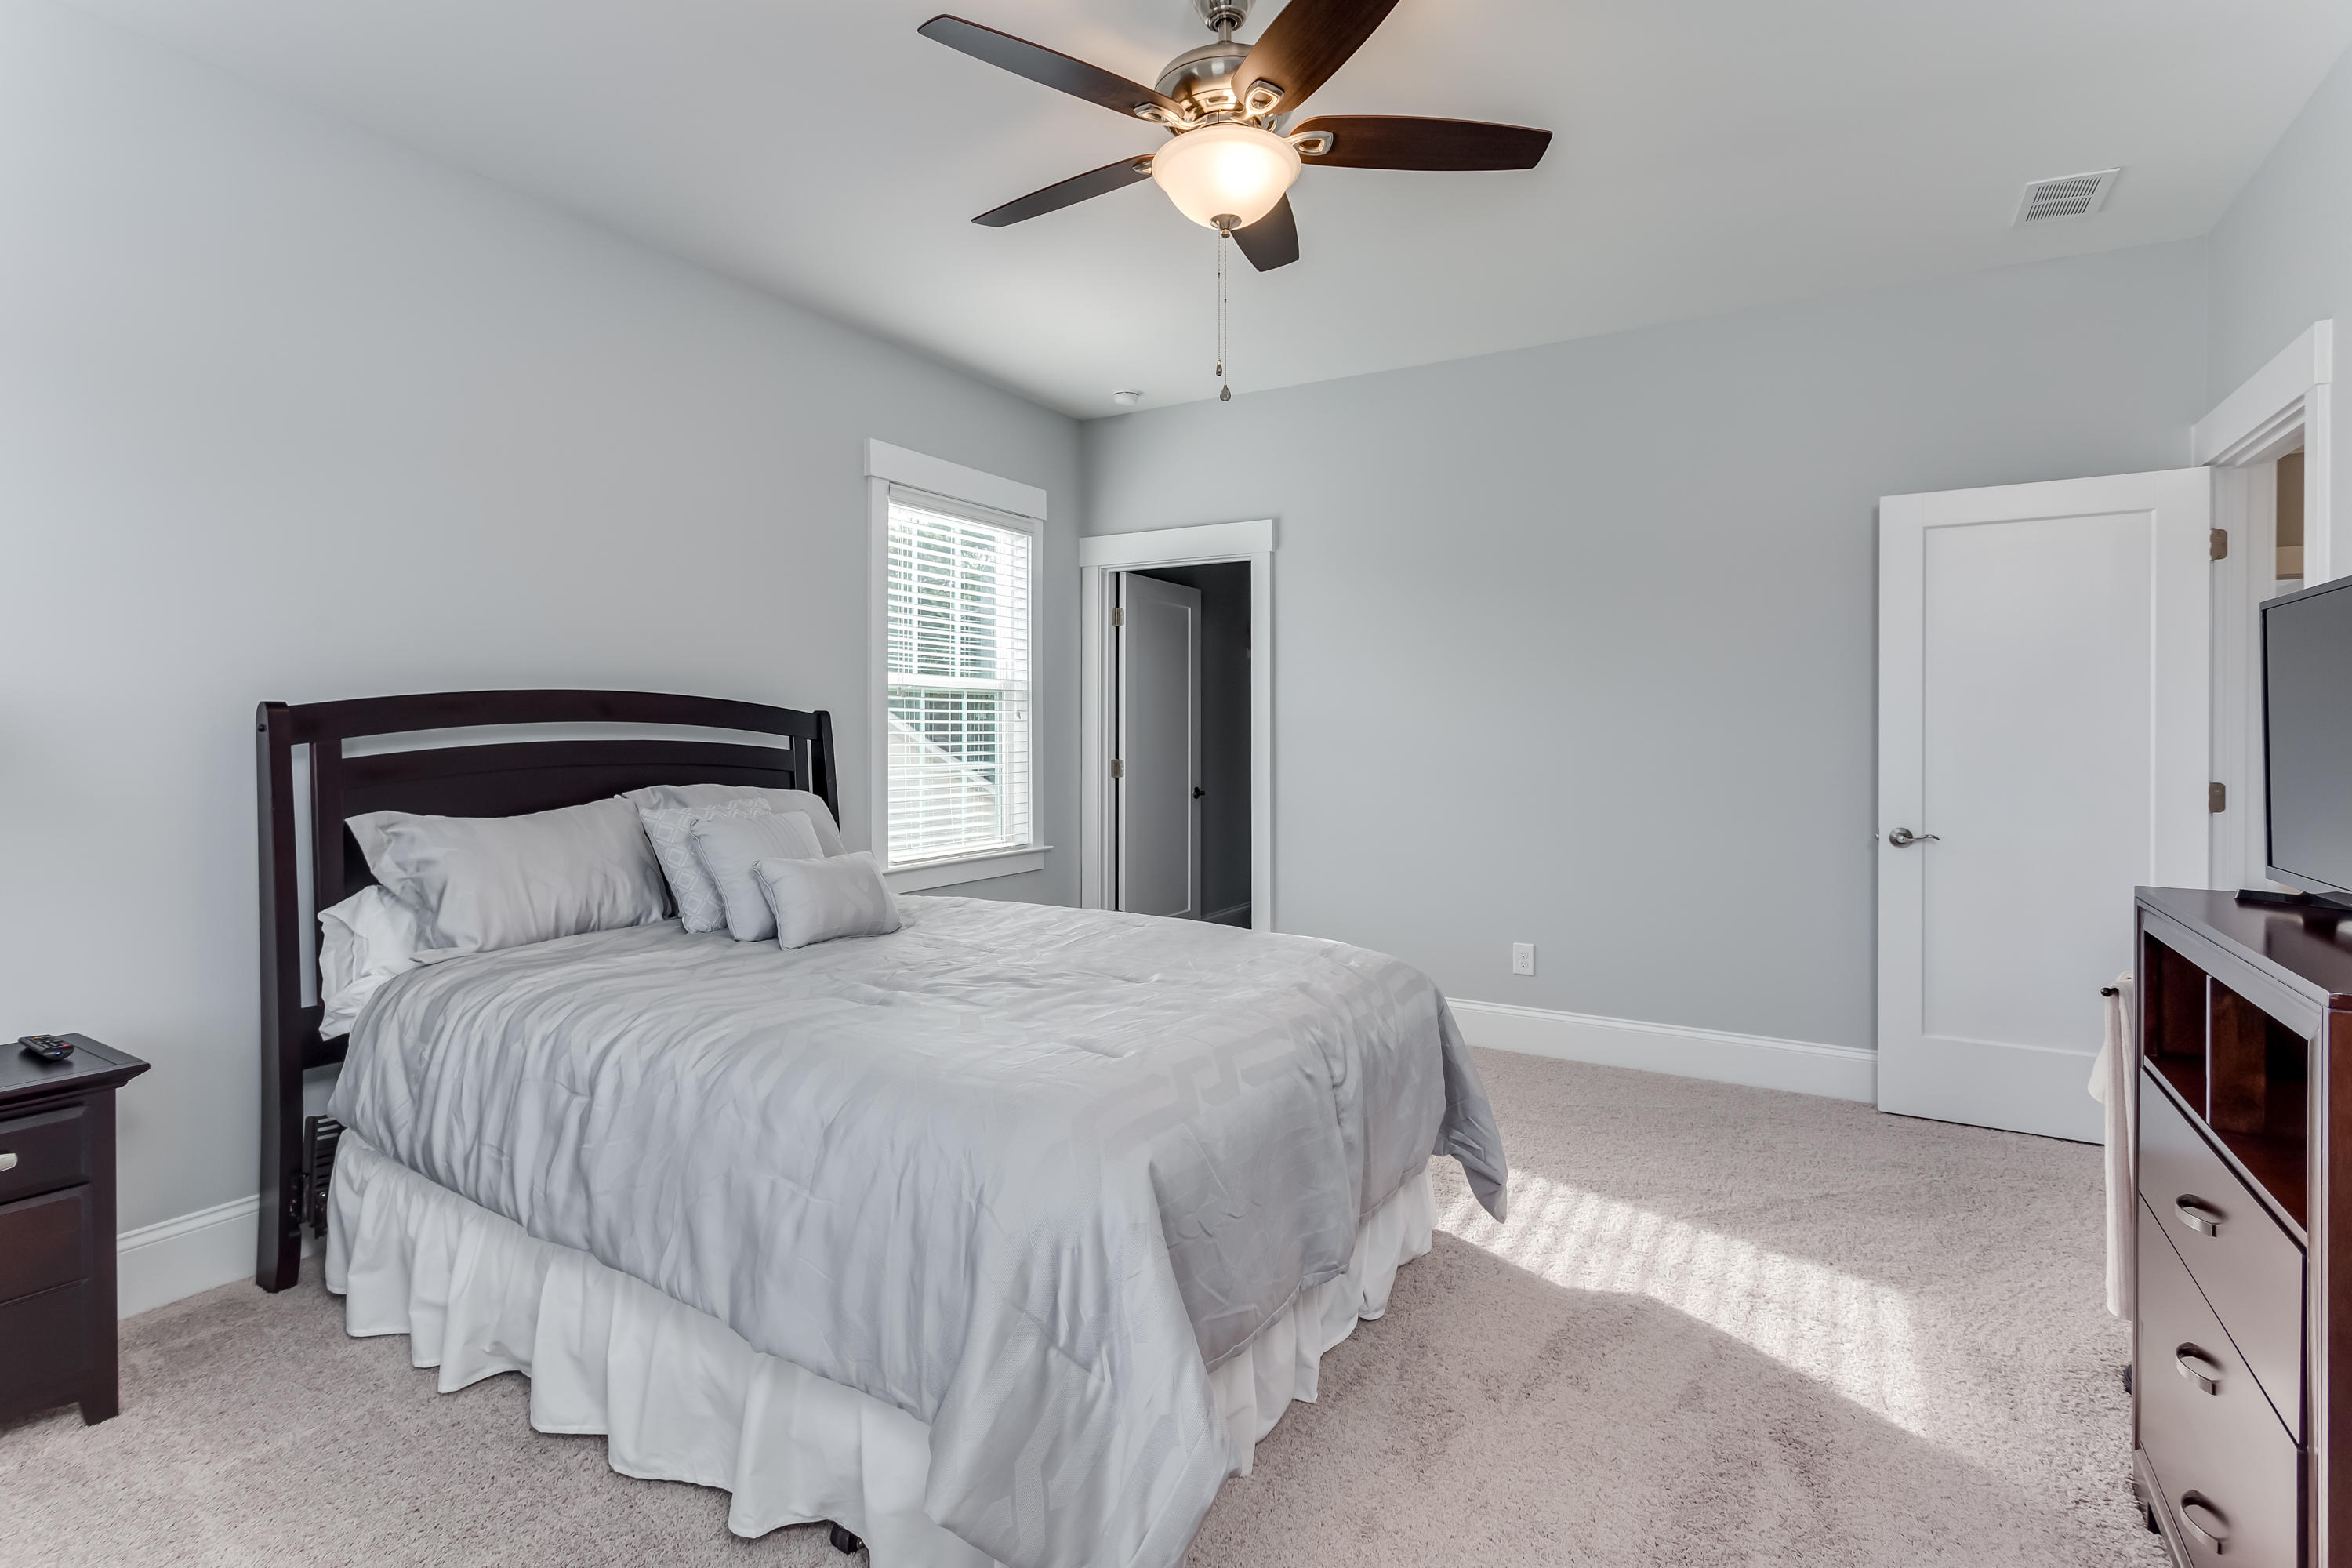 The Village at Stiles Point Homes For Sale - 849 Shutes Folly, Charleston, SC - 31